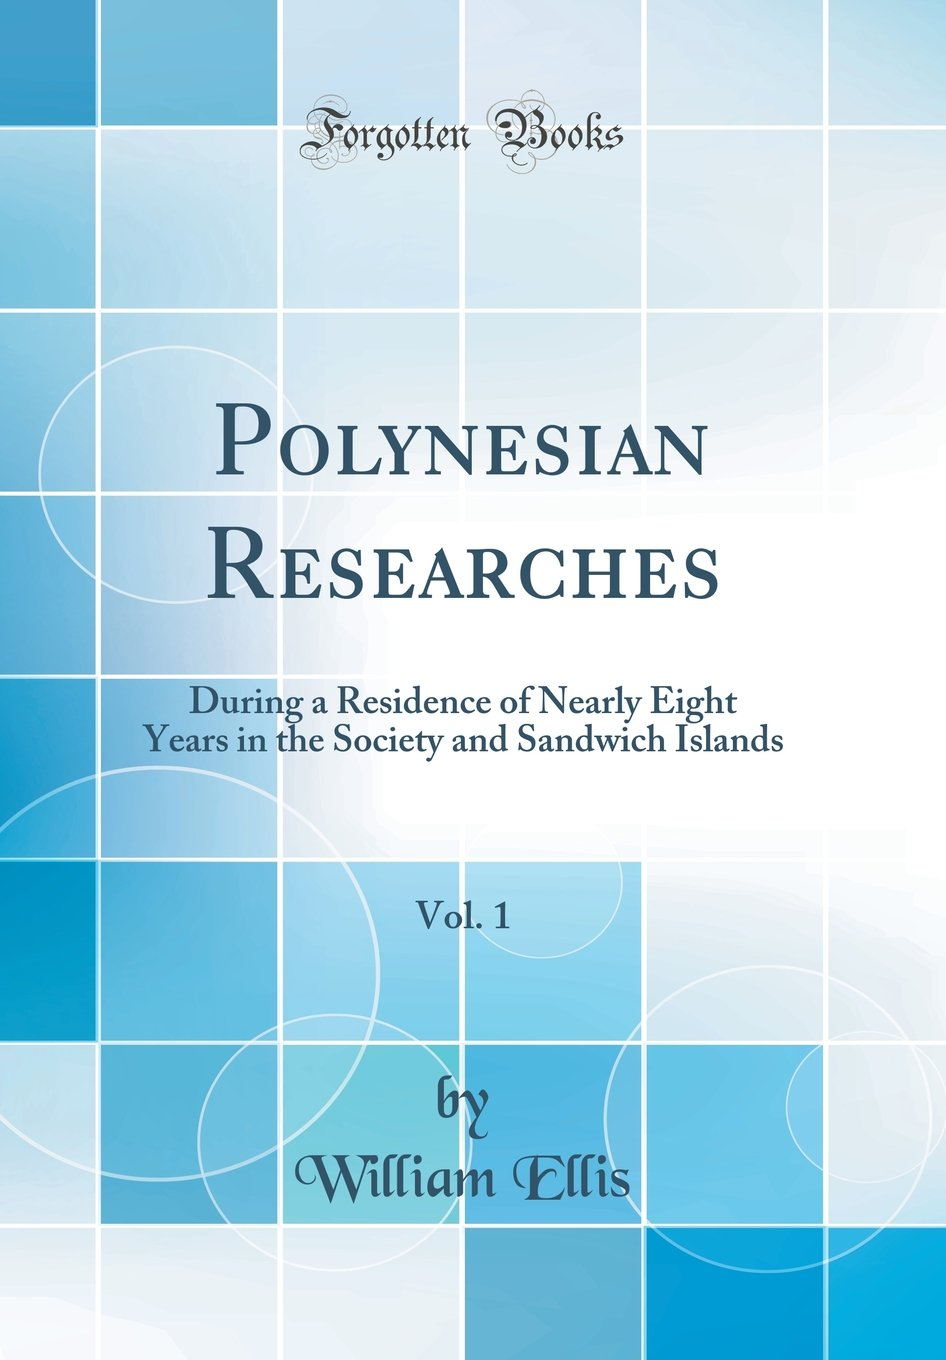 Polynesian Researches, Vol. 1: During a Residence of Nearly Eight Years in the Society and Sandwich Islands (Classic Reprint) pdf epub